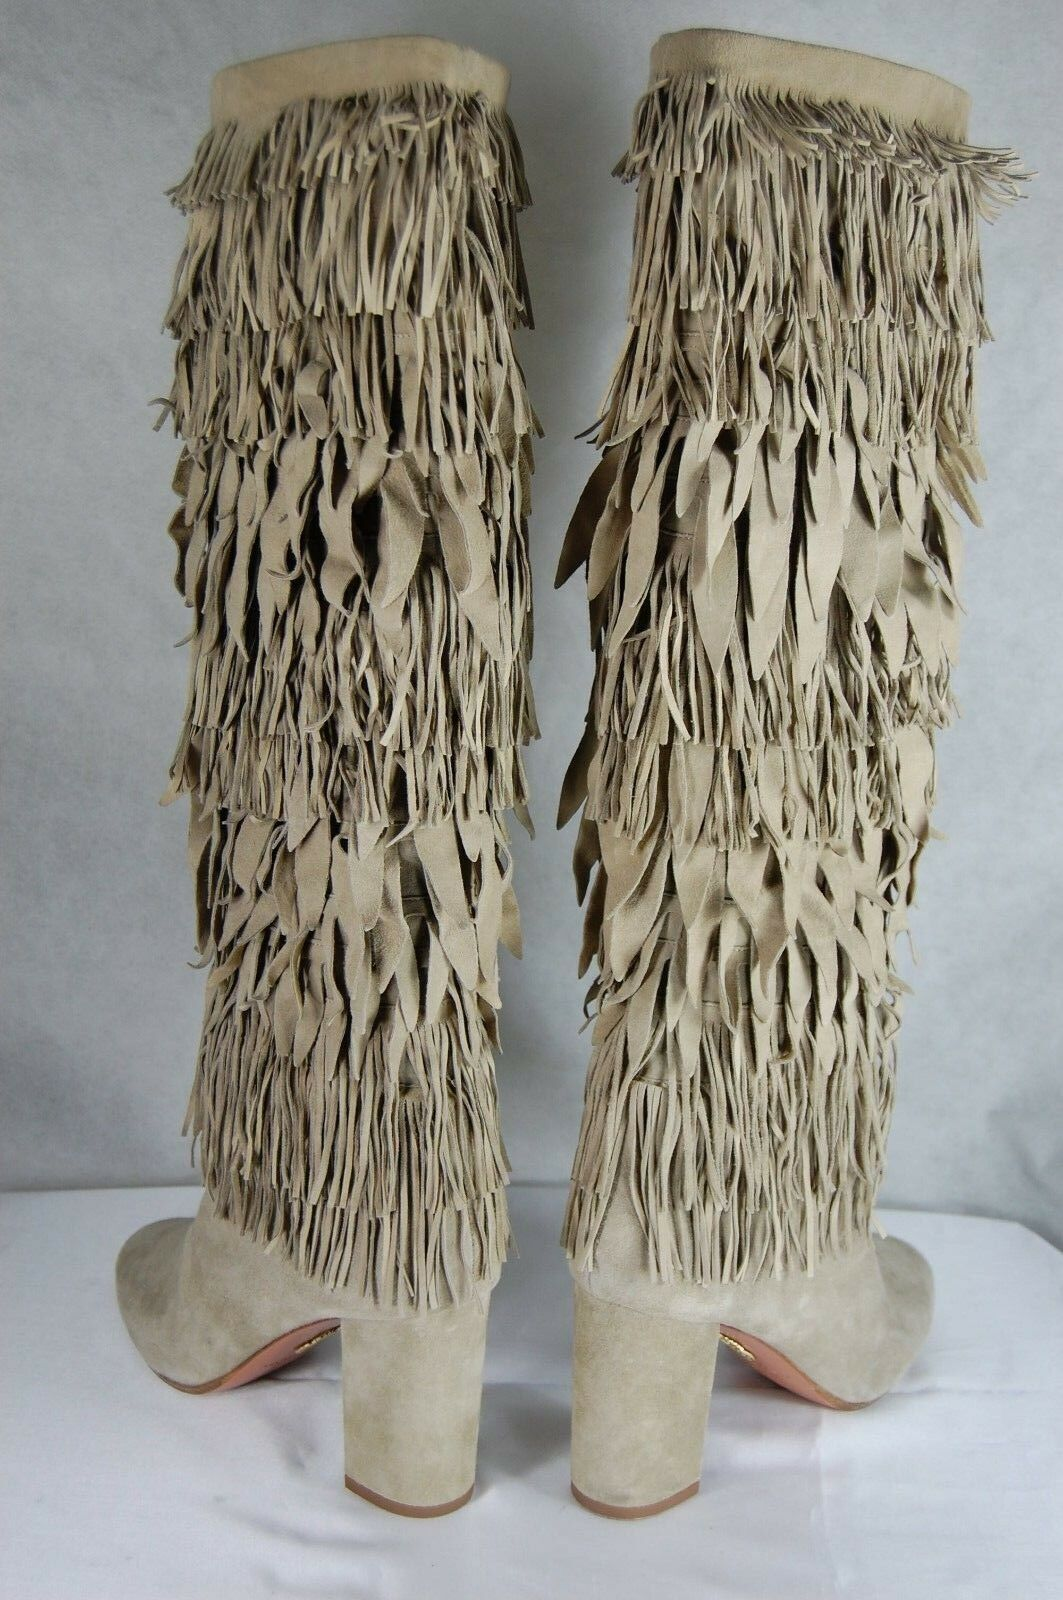 SUPER BEAUTIFUL AQUAZZURA 'WOODSTOCK' SUEDE FRINGE KNEE Stiefel EU 39 US 9